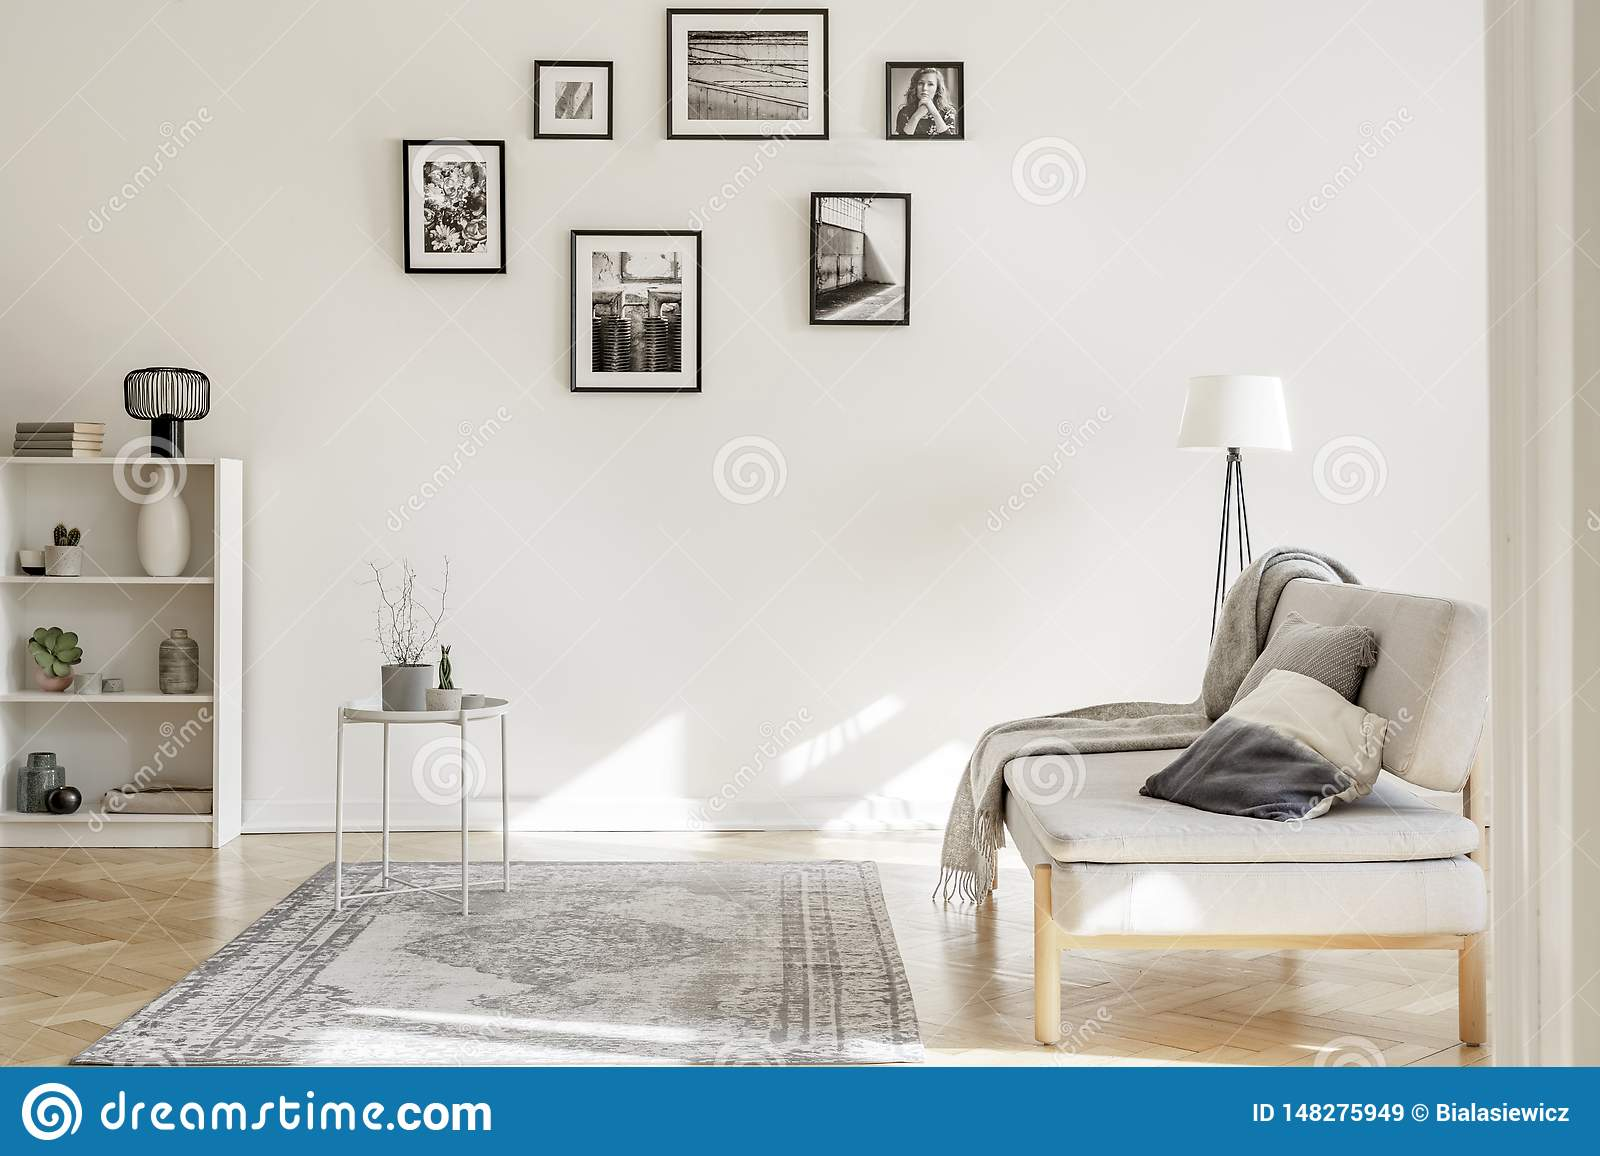 Gallery of black and white posters on the wall of classy living room interior